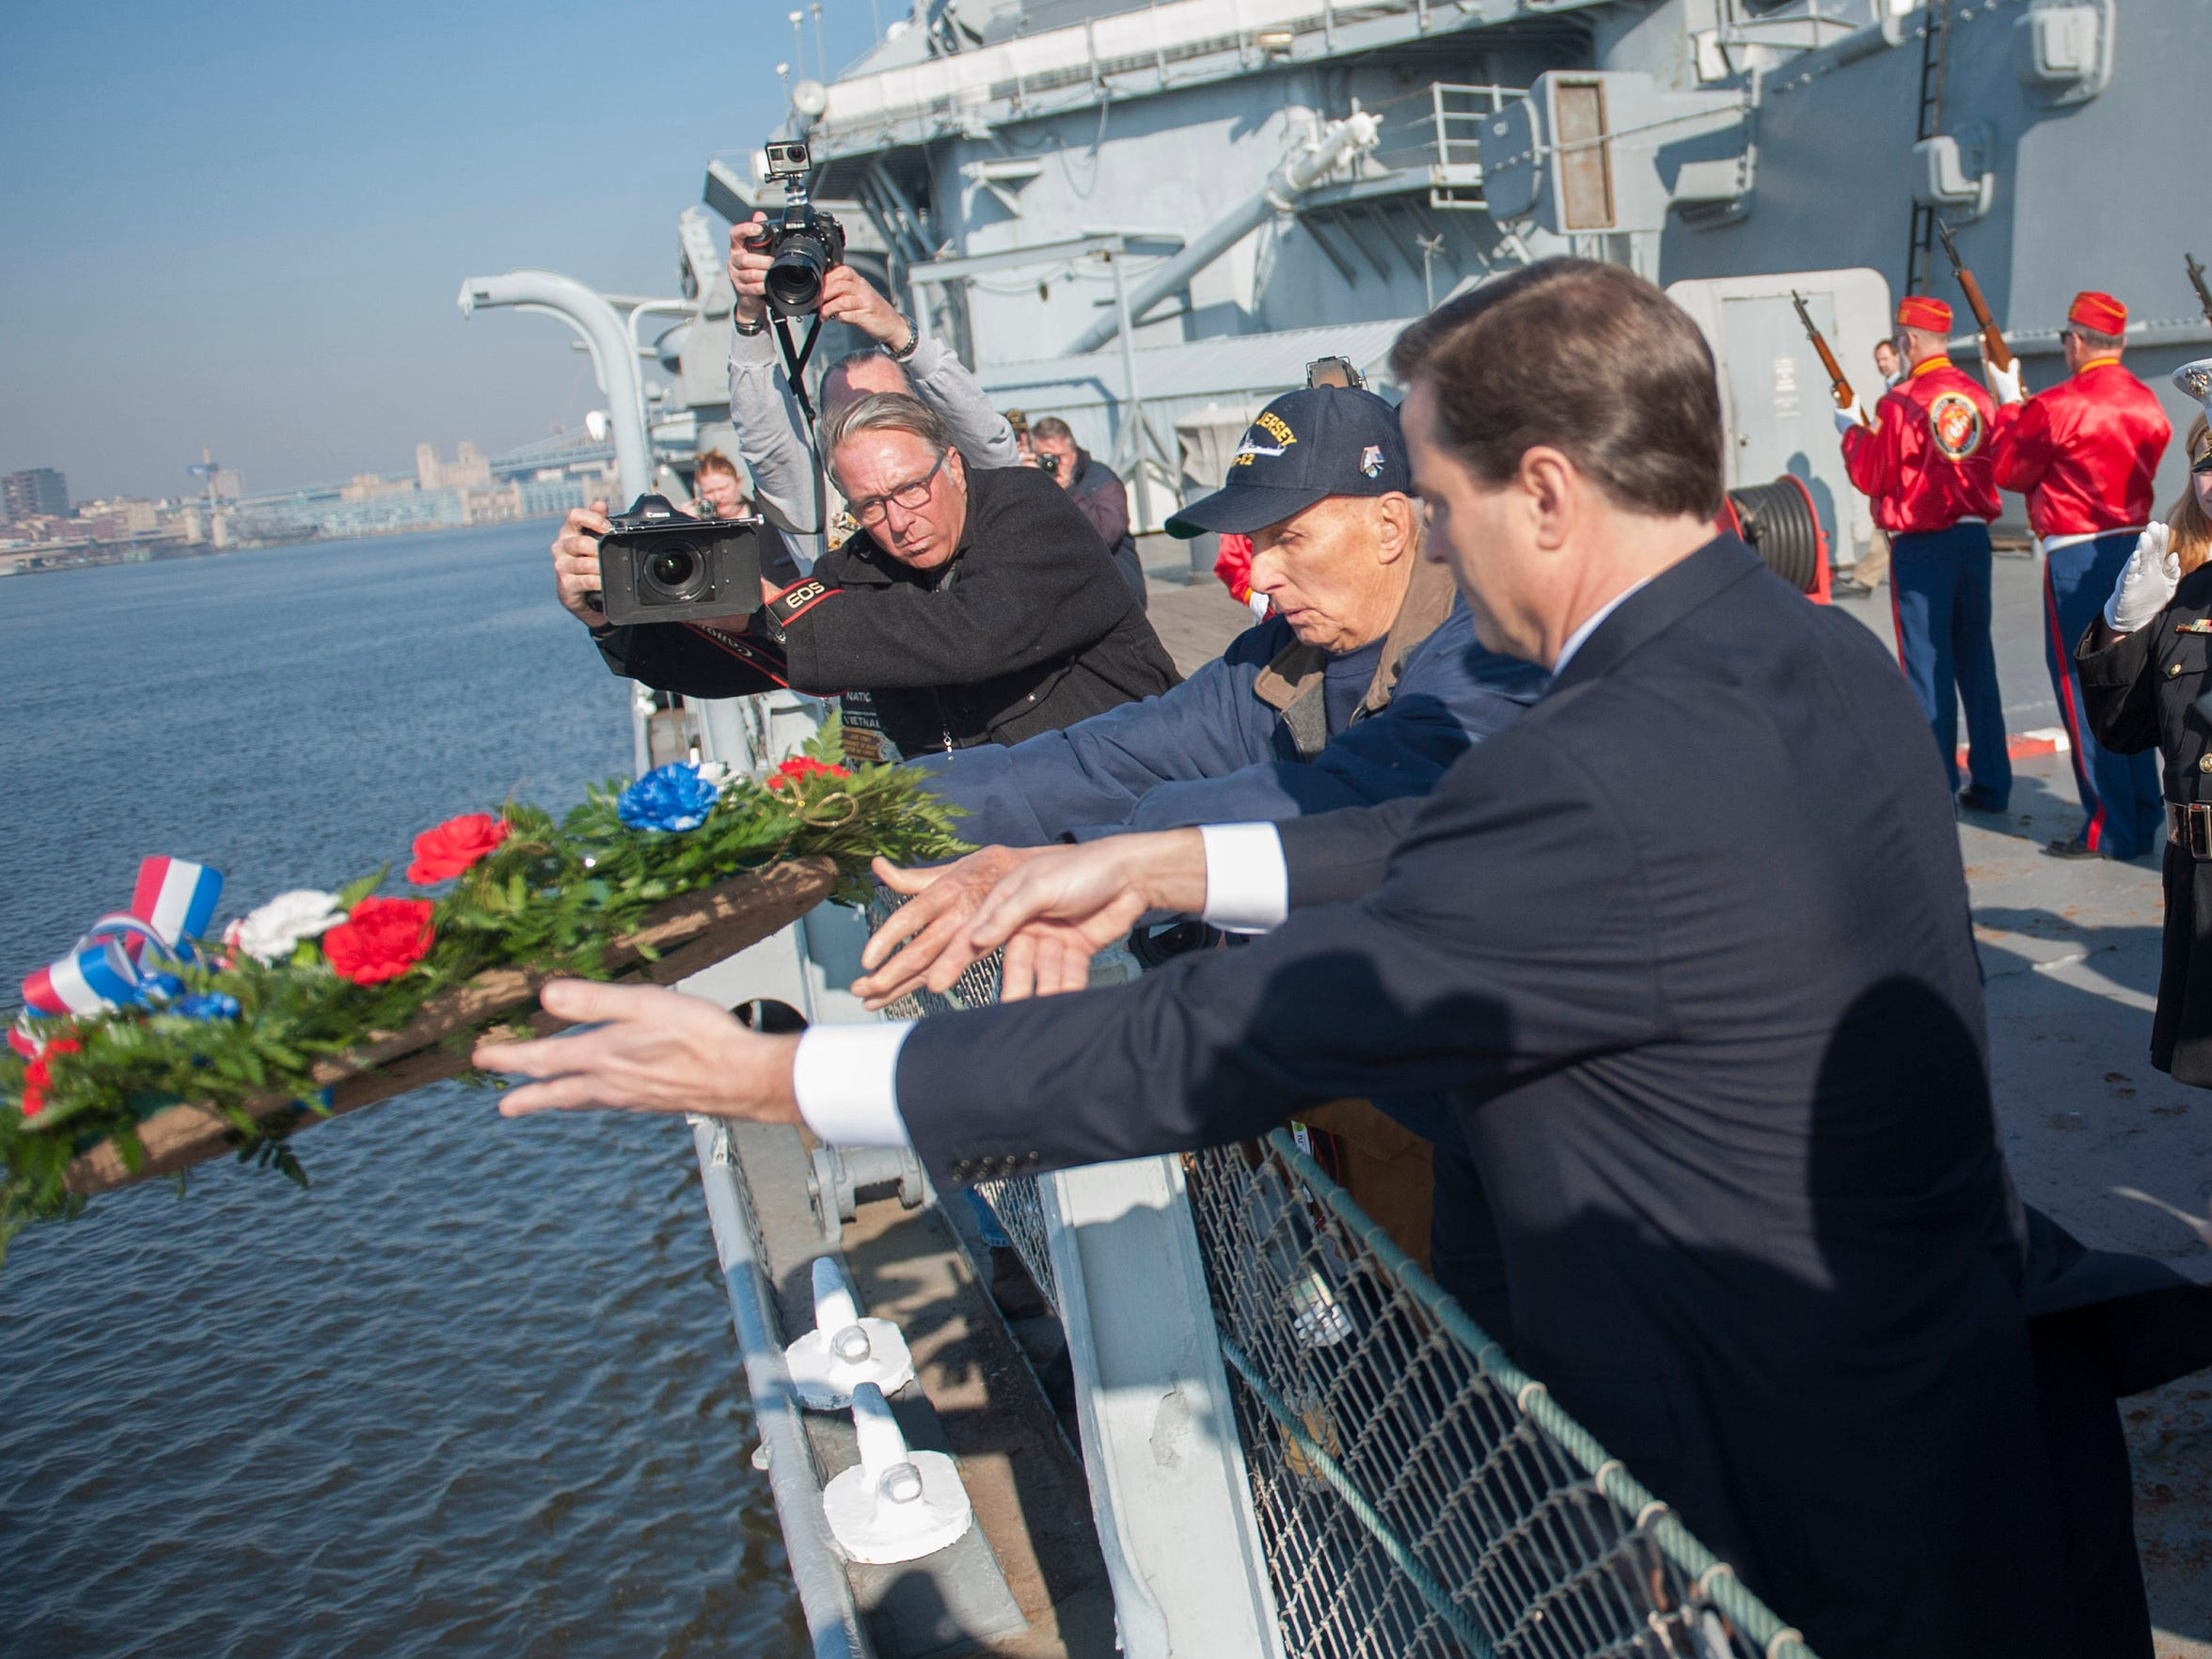 Congressman Donald Norcross and WWII Veteran Russell Collins of Palmyra toss the Memorial Wreath in the Delaware River during the Pearl Harbor Day Commemoration aboard the Battleship New Jersey. Monday, December 7, 2015.